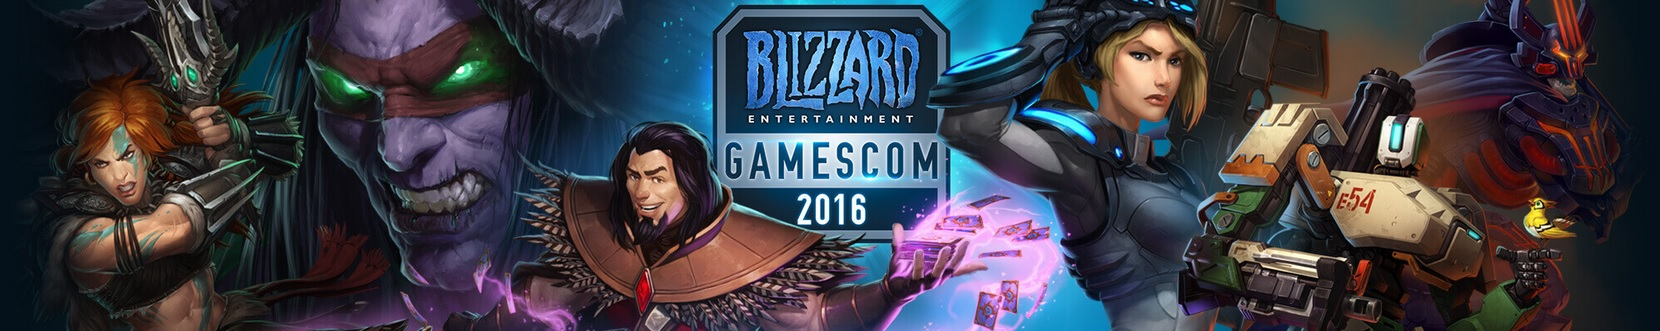 Blizzard Entertainment presenta le sue novità alla Gamescom